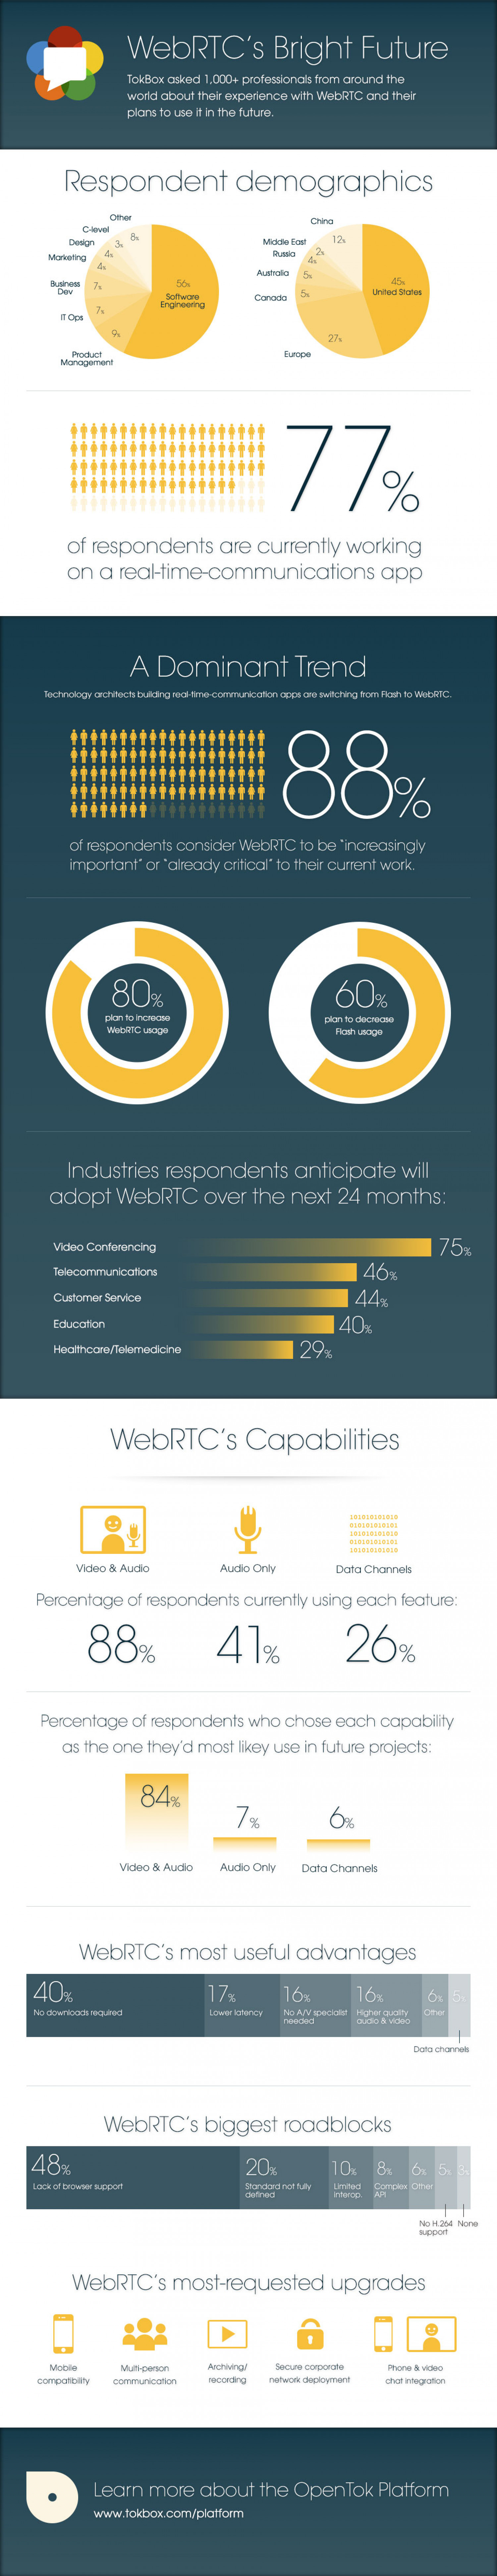 WebRTC's Bright Future Infographic